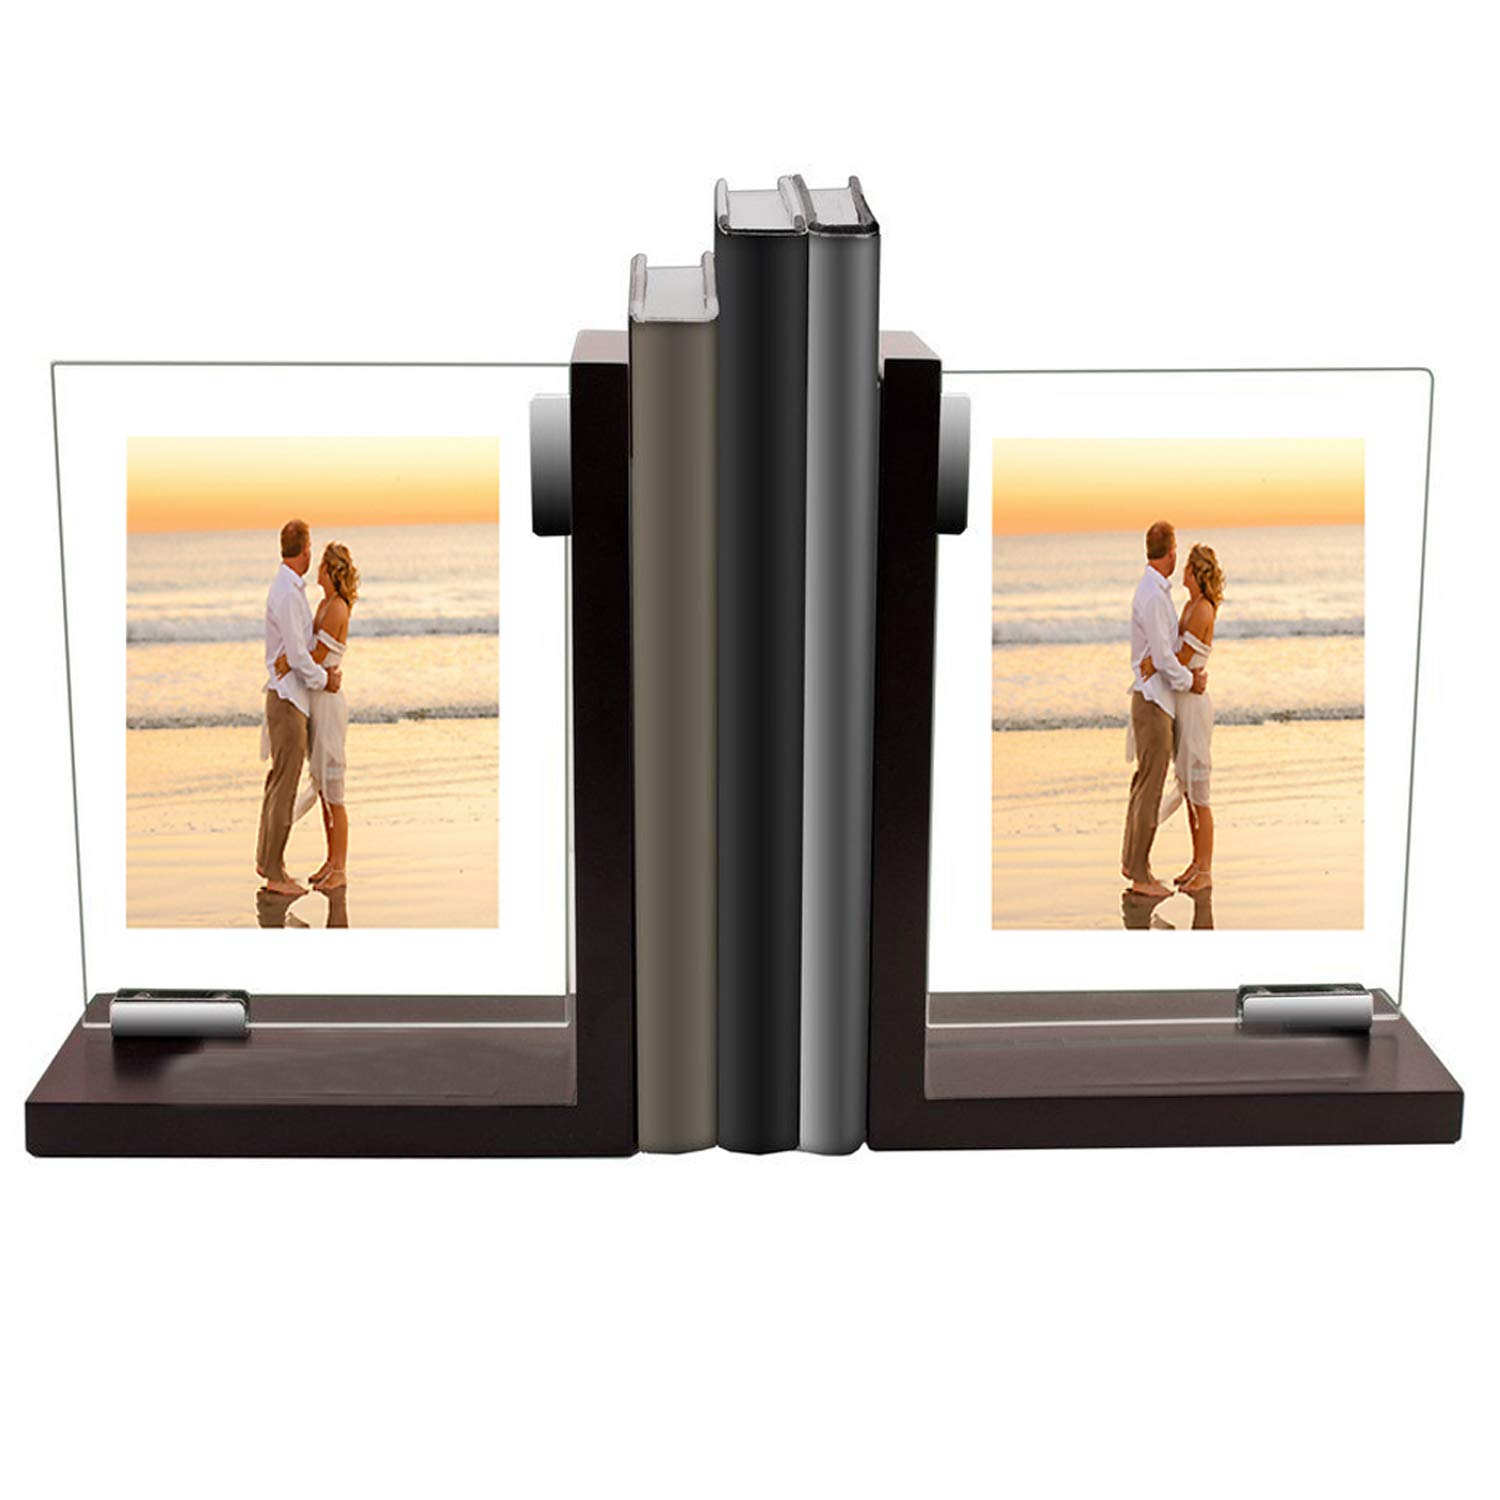 Pair of Beautiful Deocrative Bookends With Felt Pads to Protect Bookshelf Bookcase